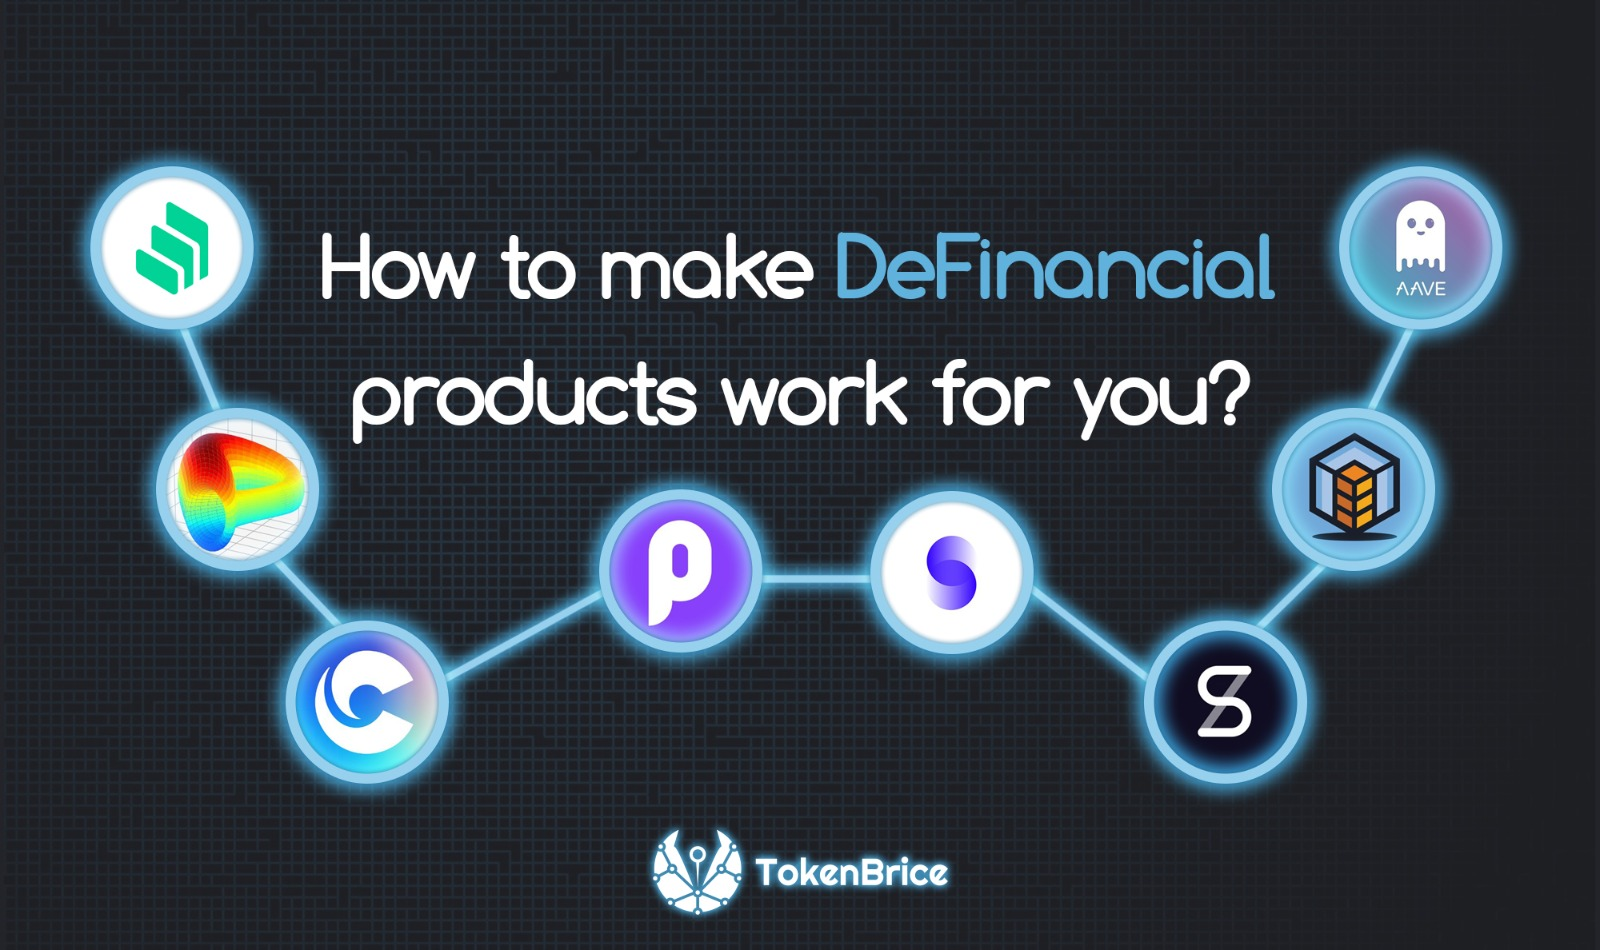 how-to-make-definancial-product-work-for-you-tokenbrice